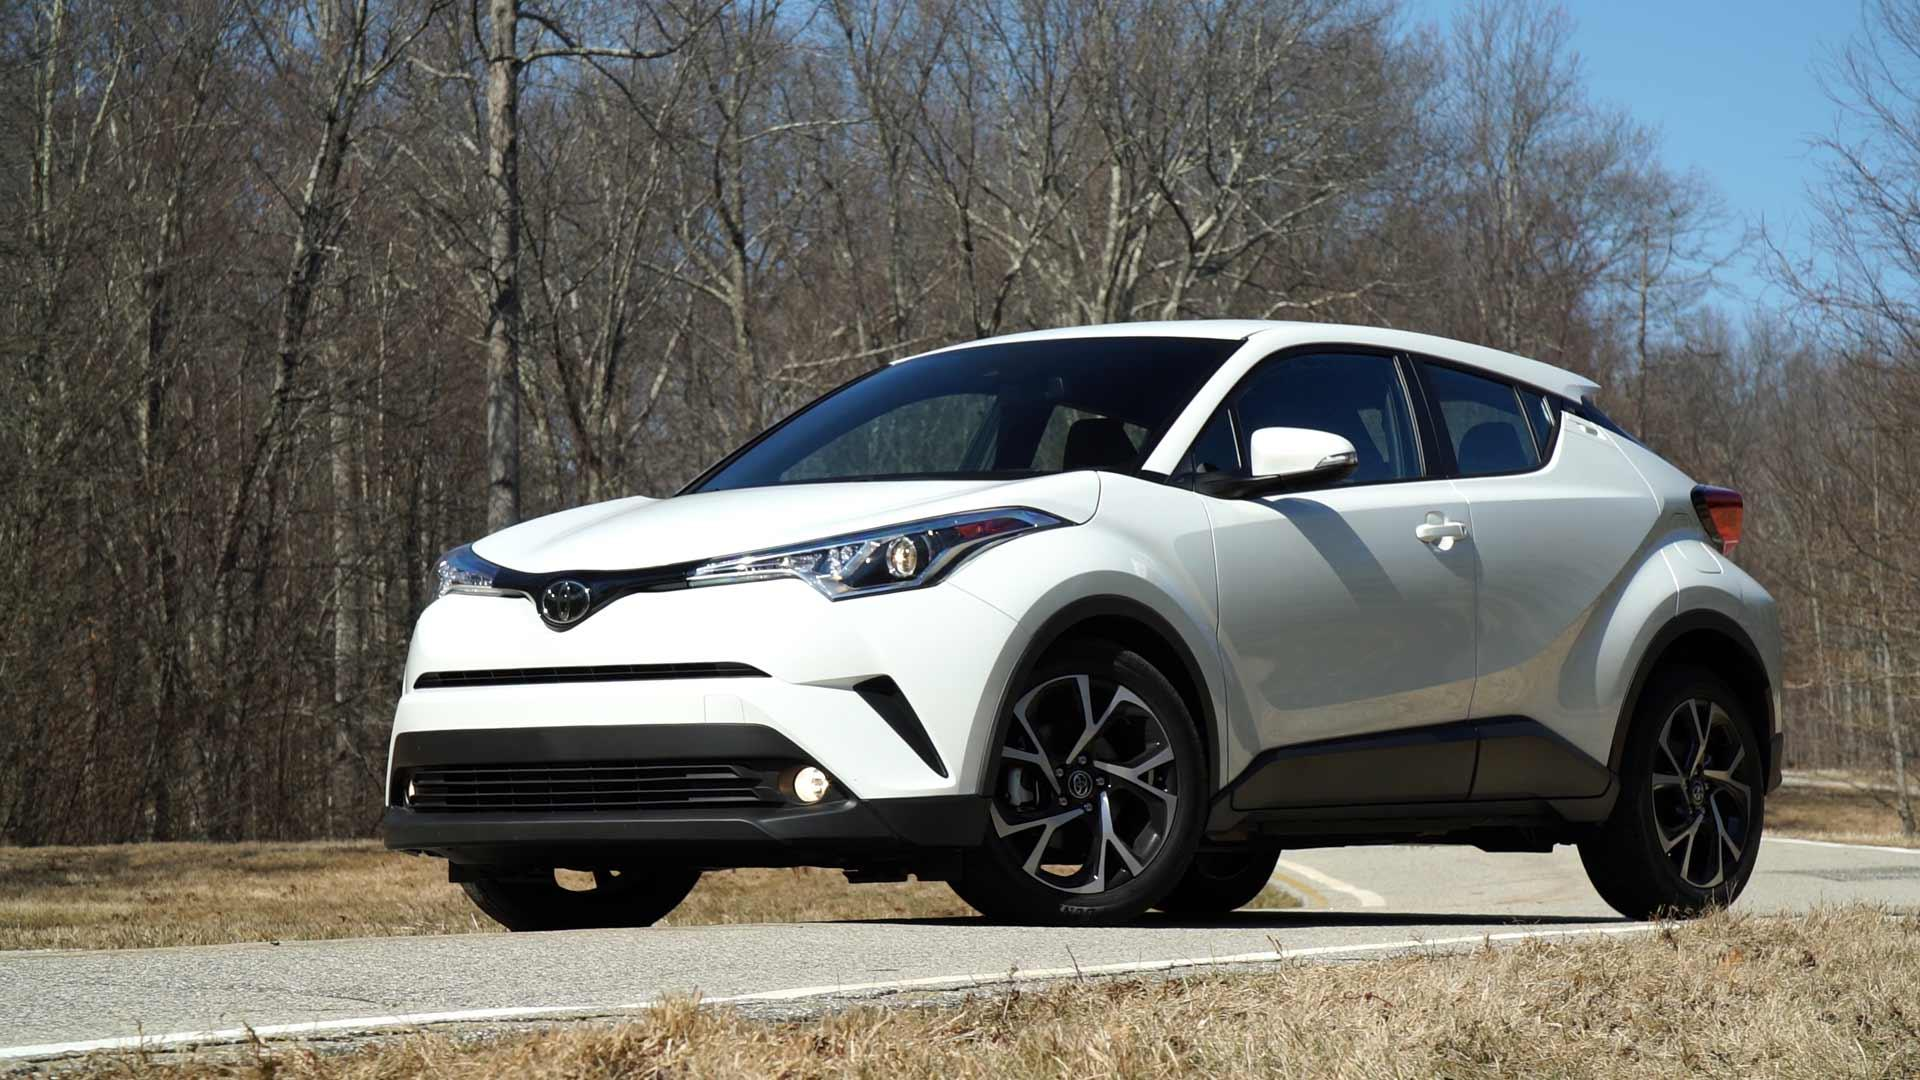 2018 toyota c-hr review - consumer reports